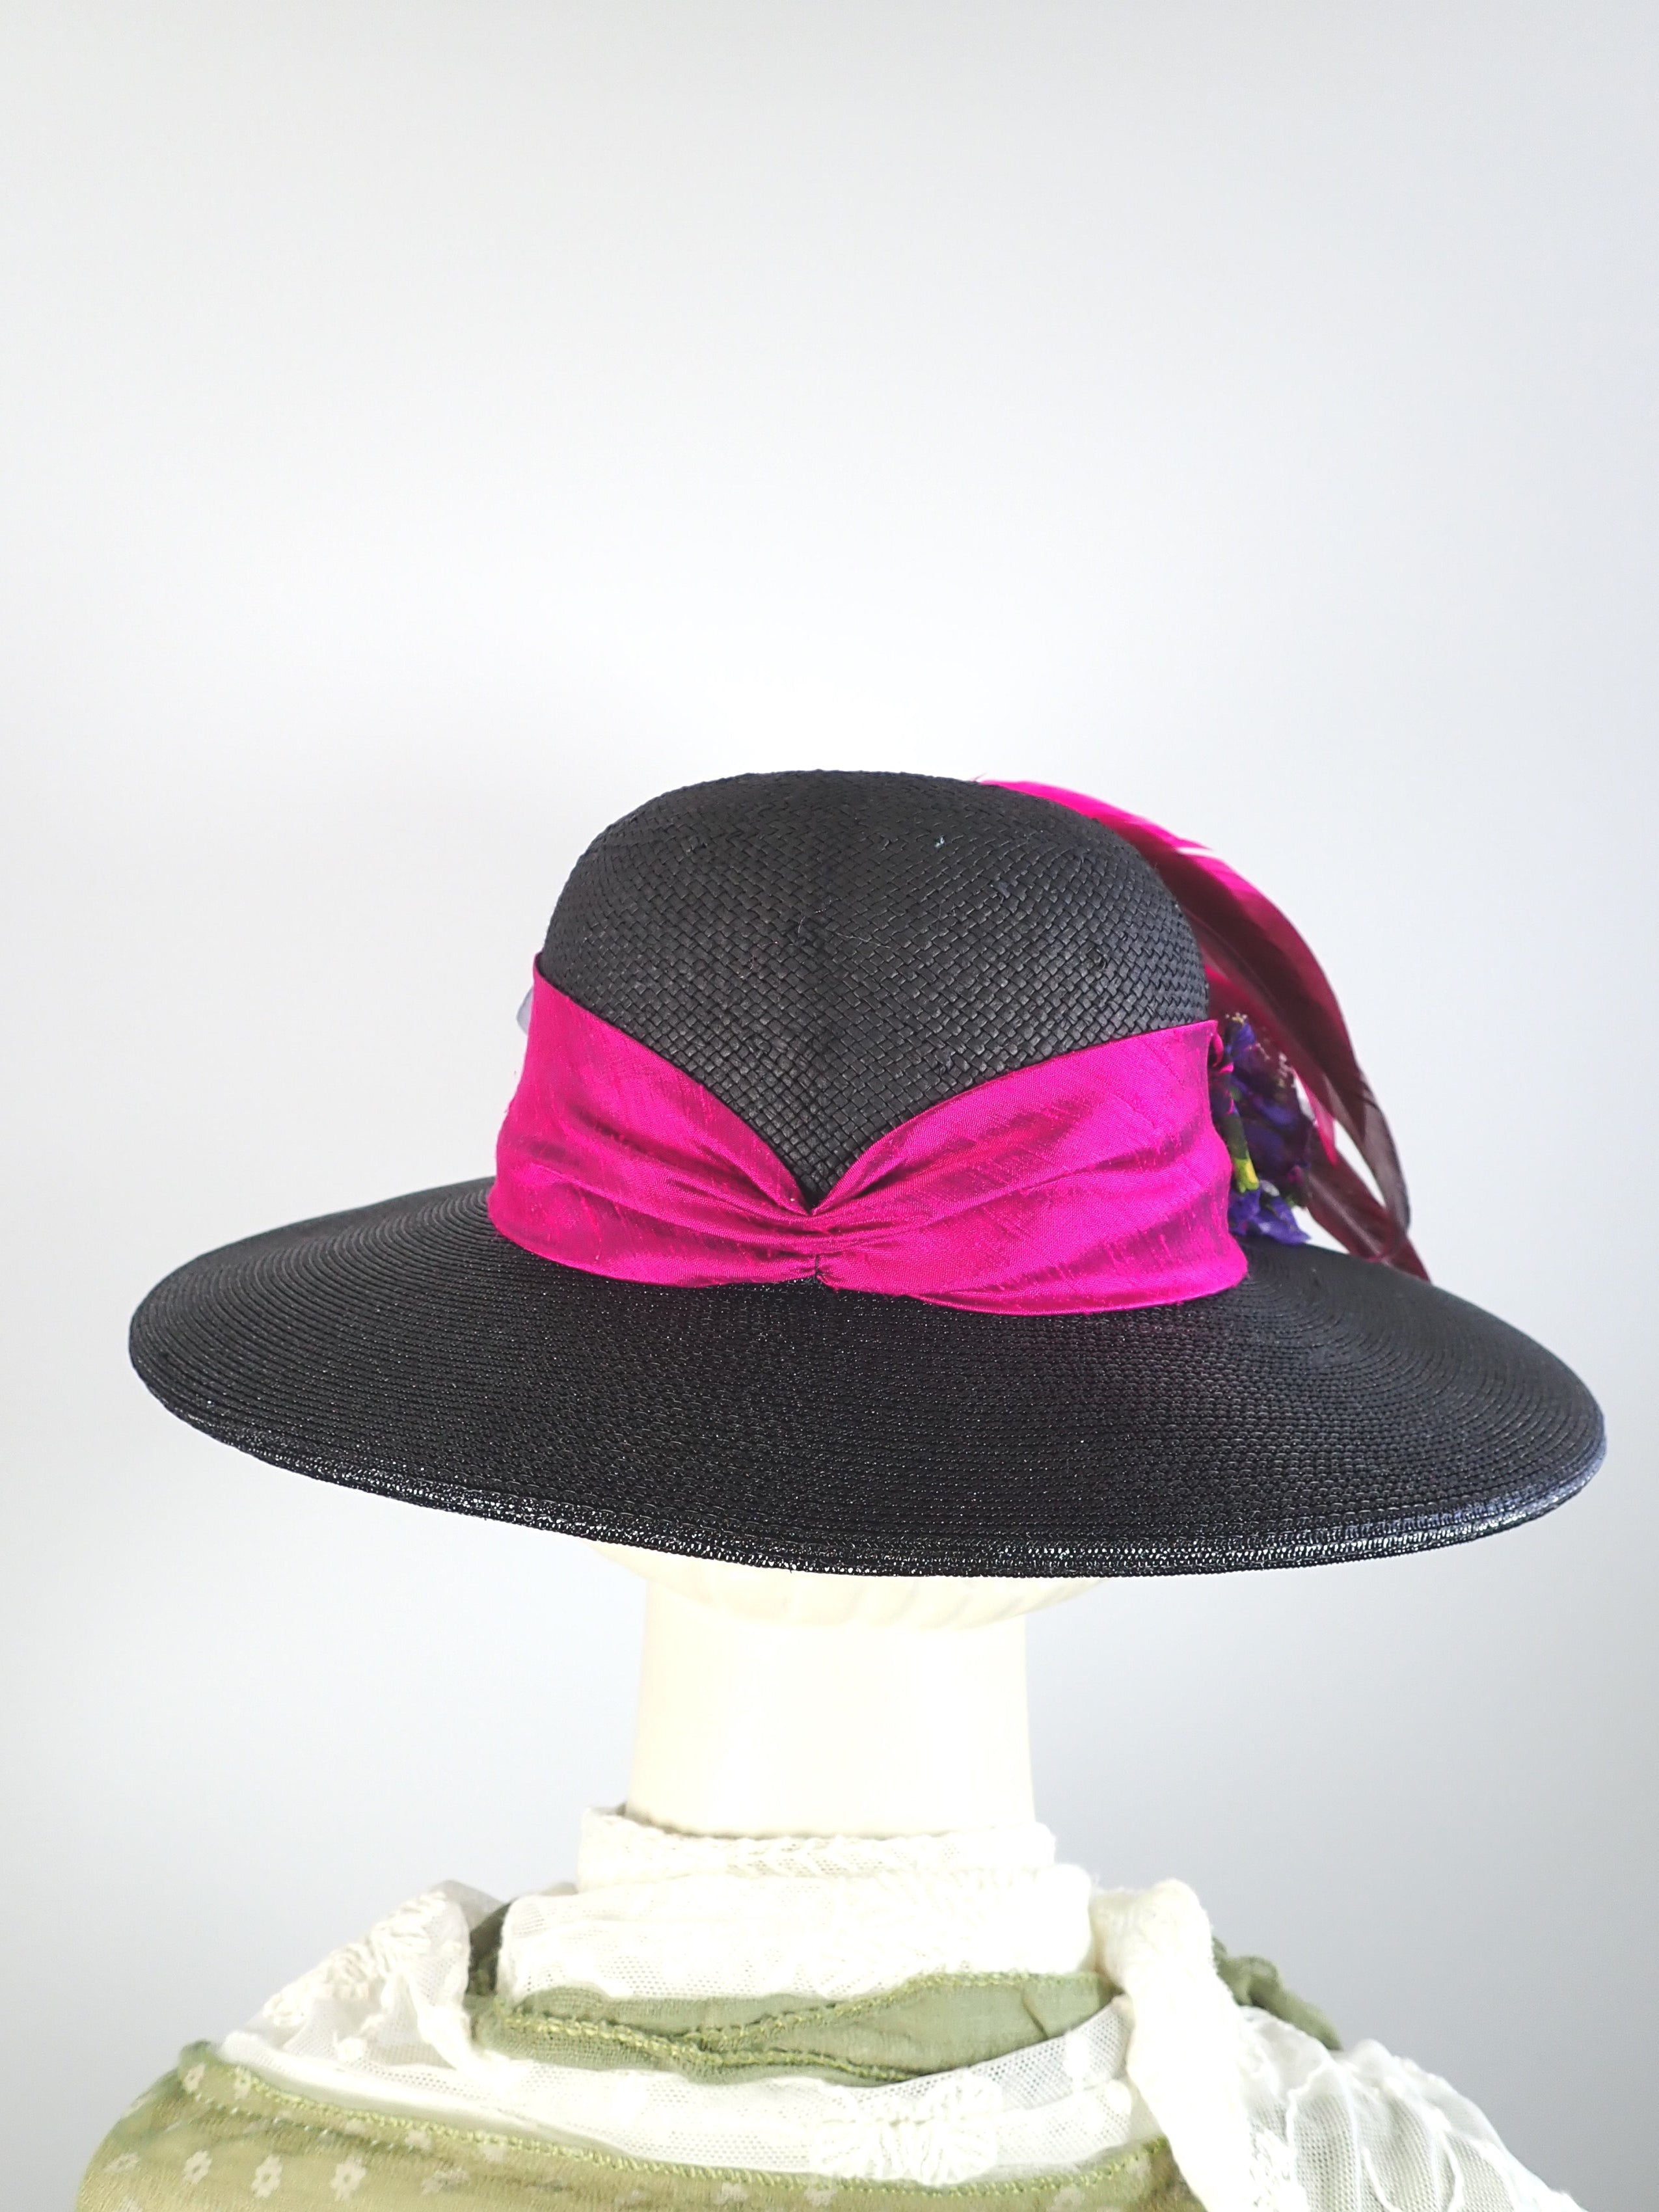 Bold statement brim hat. Recycled straw hat. Dramatic Black Pink Edwardian style hat. Wide Brim Church Hat.